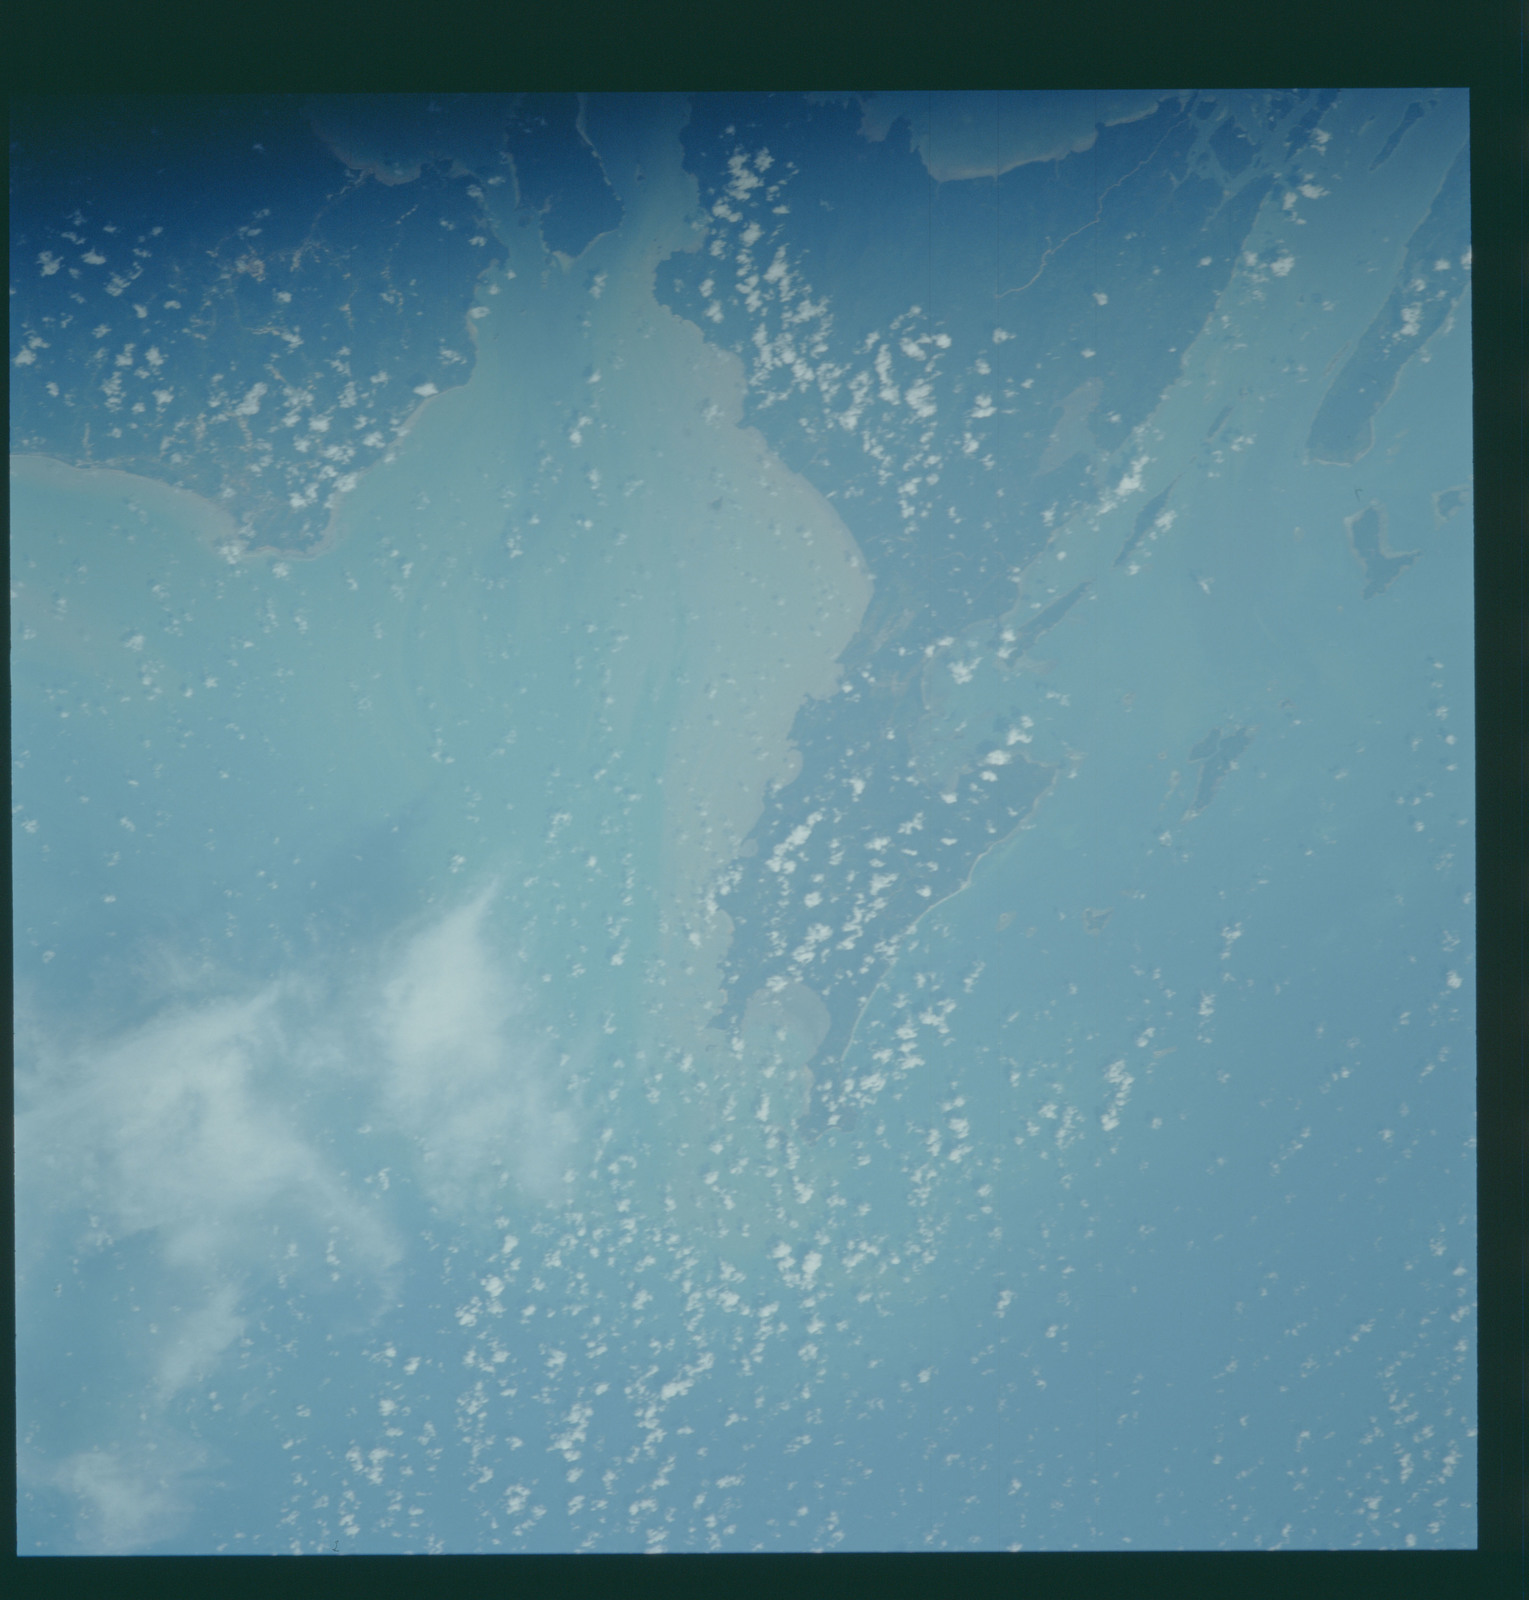 S43-607-031 - STS-043 - STS-43 earth observations